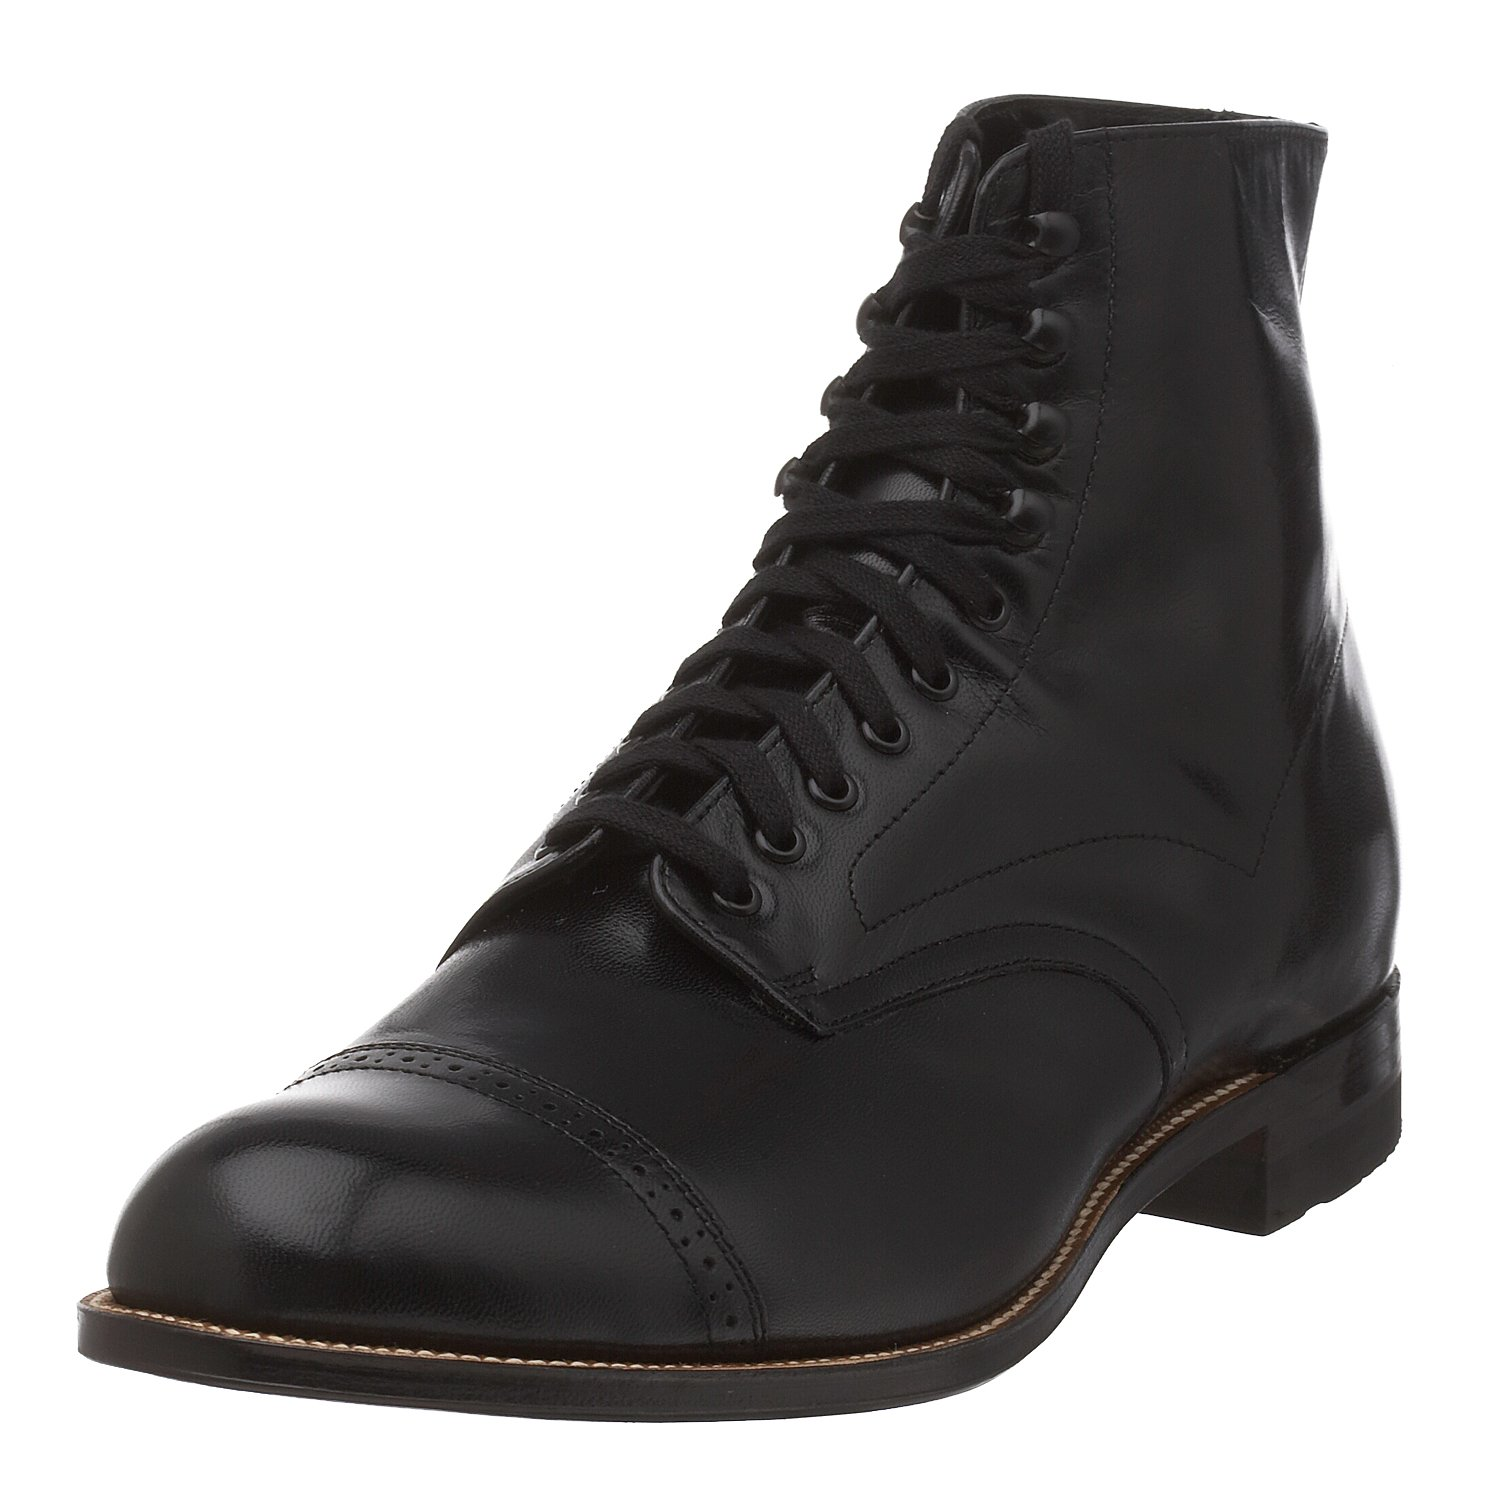 Stacy Adams Men's Victorian Boots and Shoes UK - Stacy Adams Mens Madison Cap Toe Boot £96.11 AT vintagedancer.com